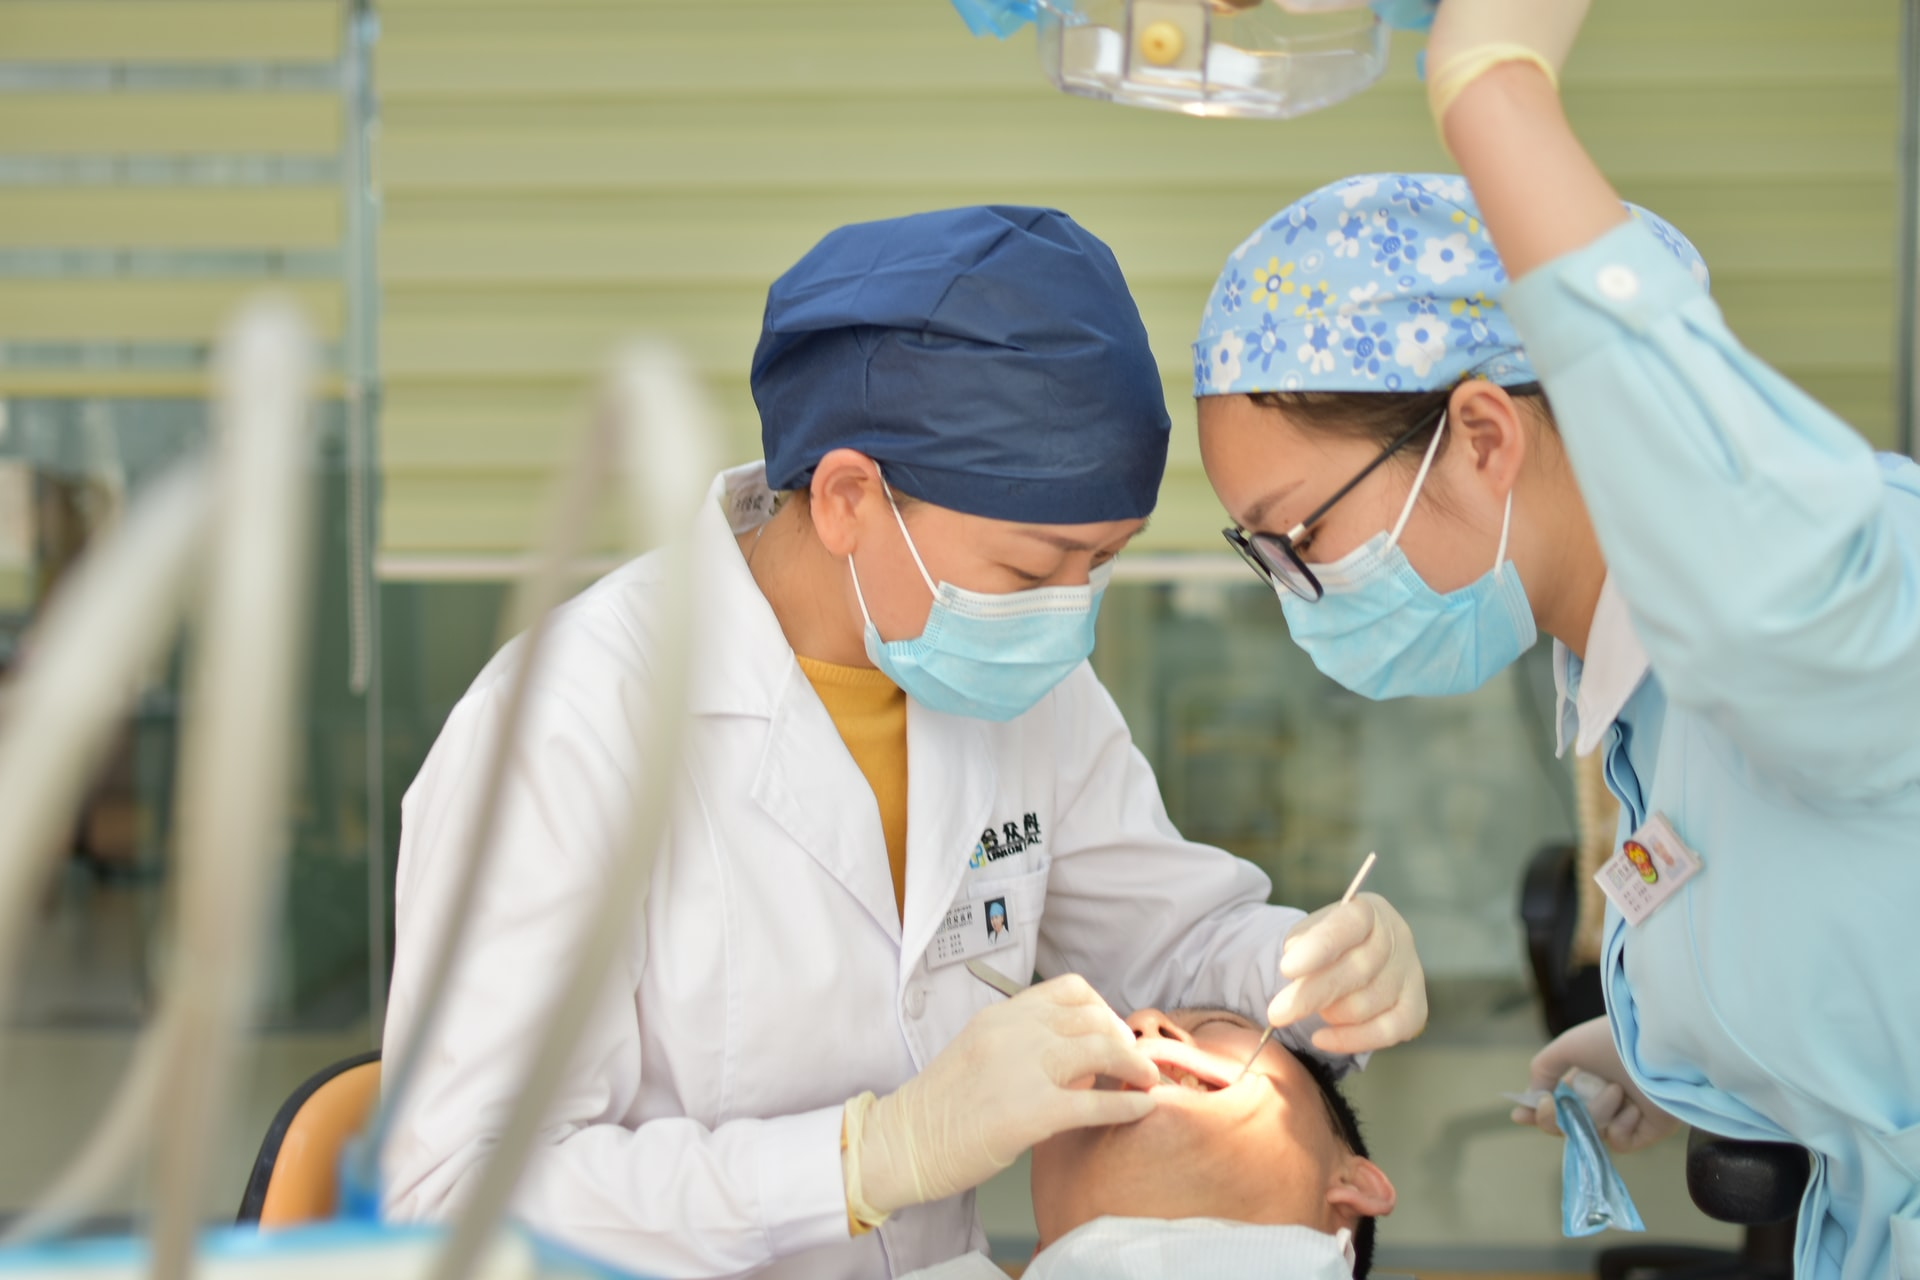 dentists performing a dental operation